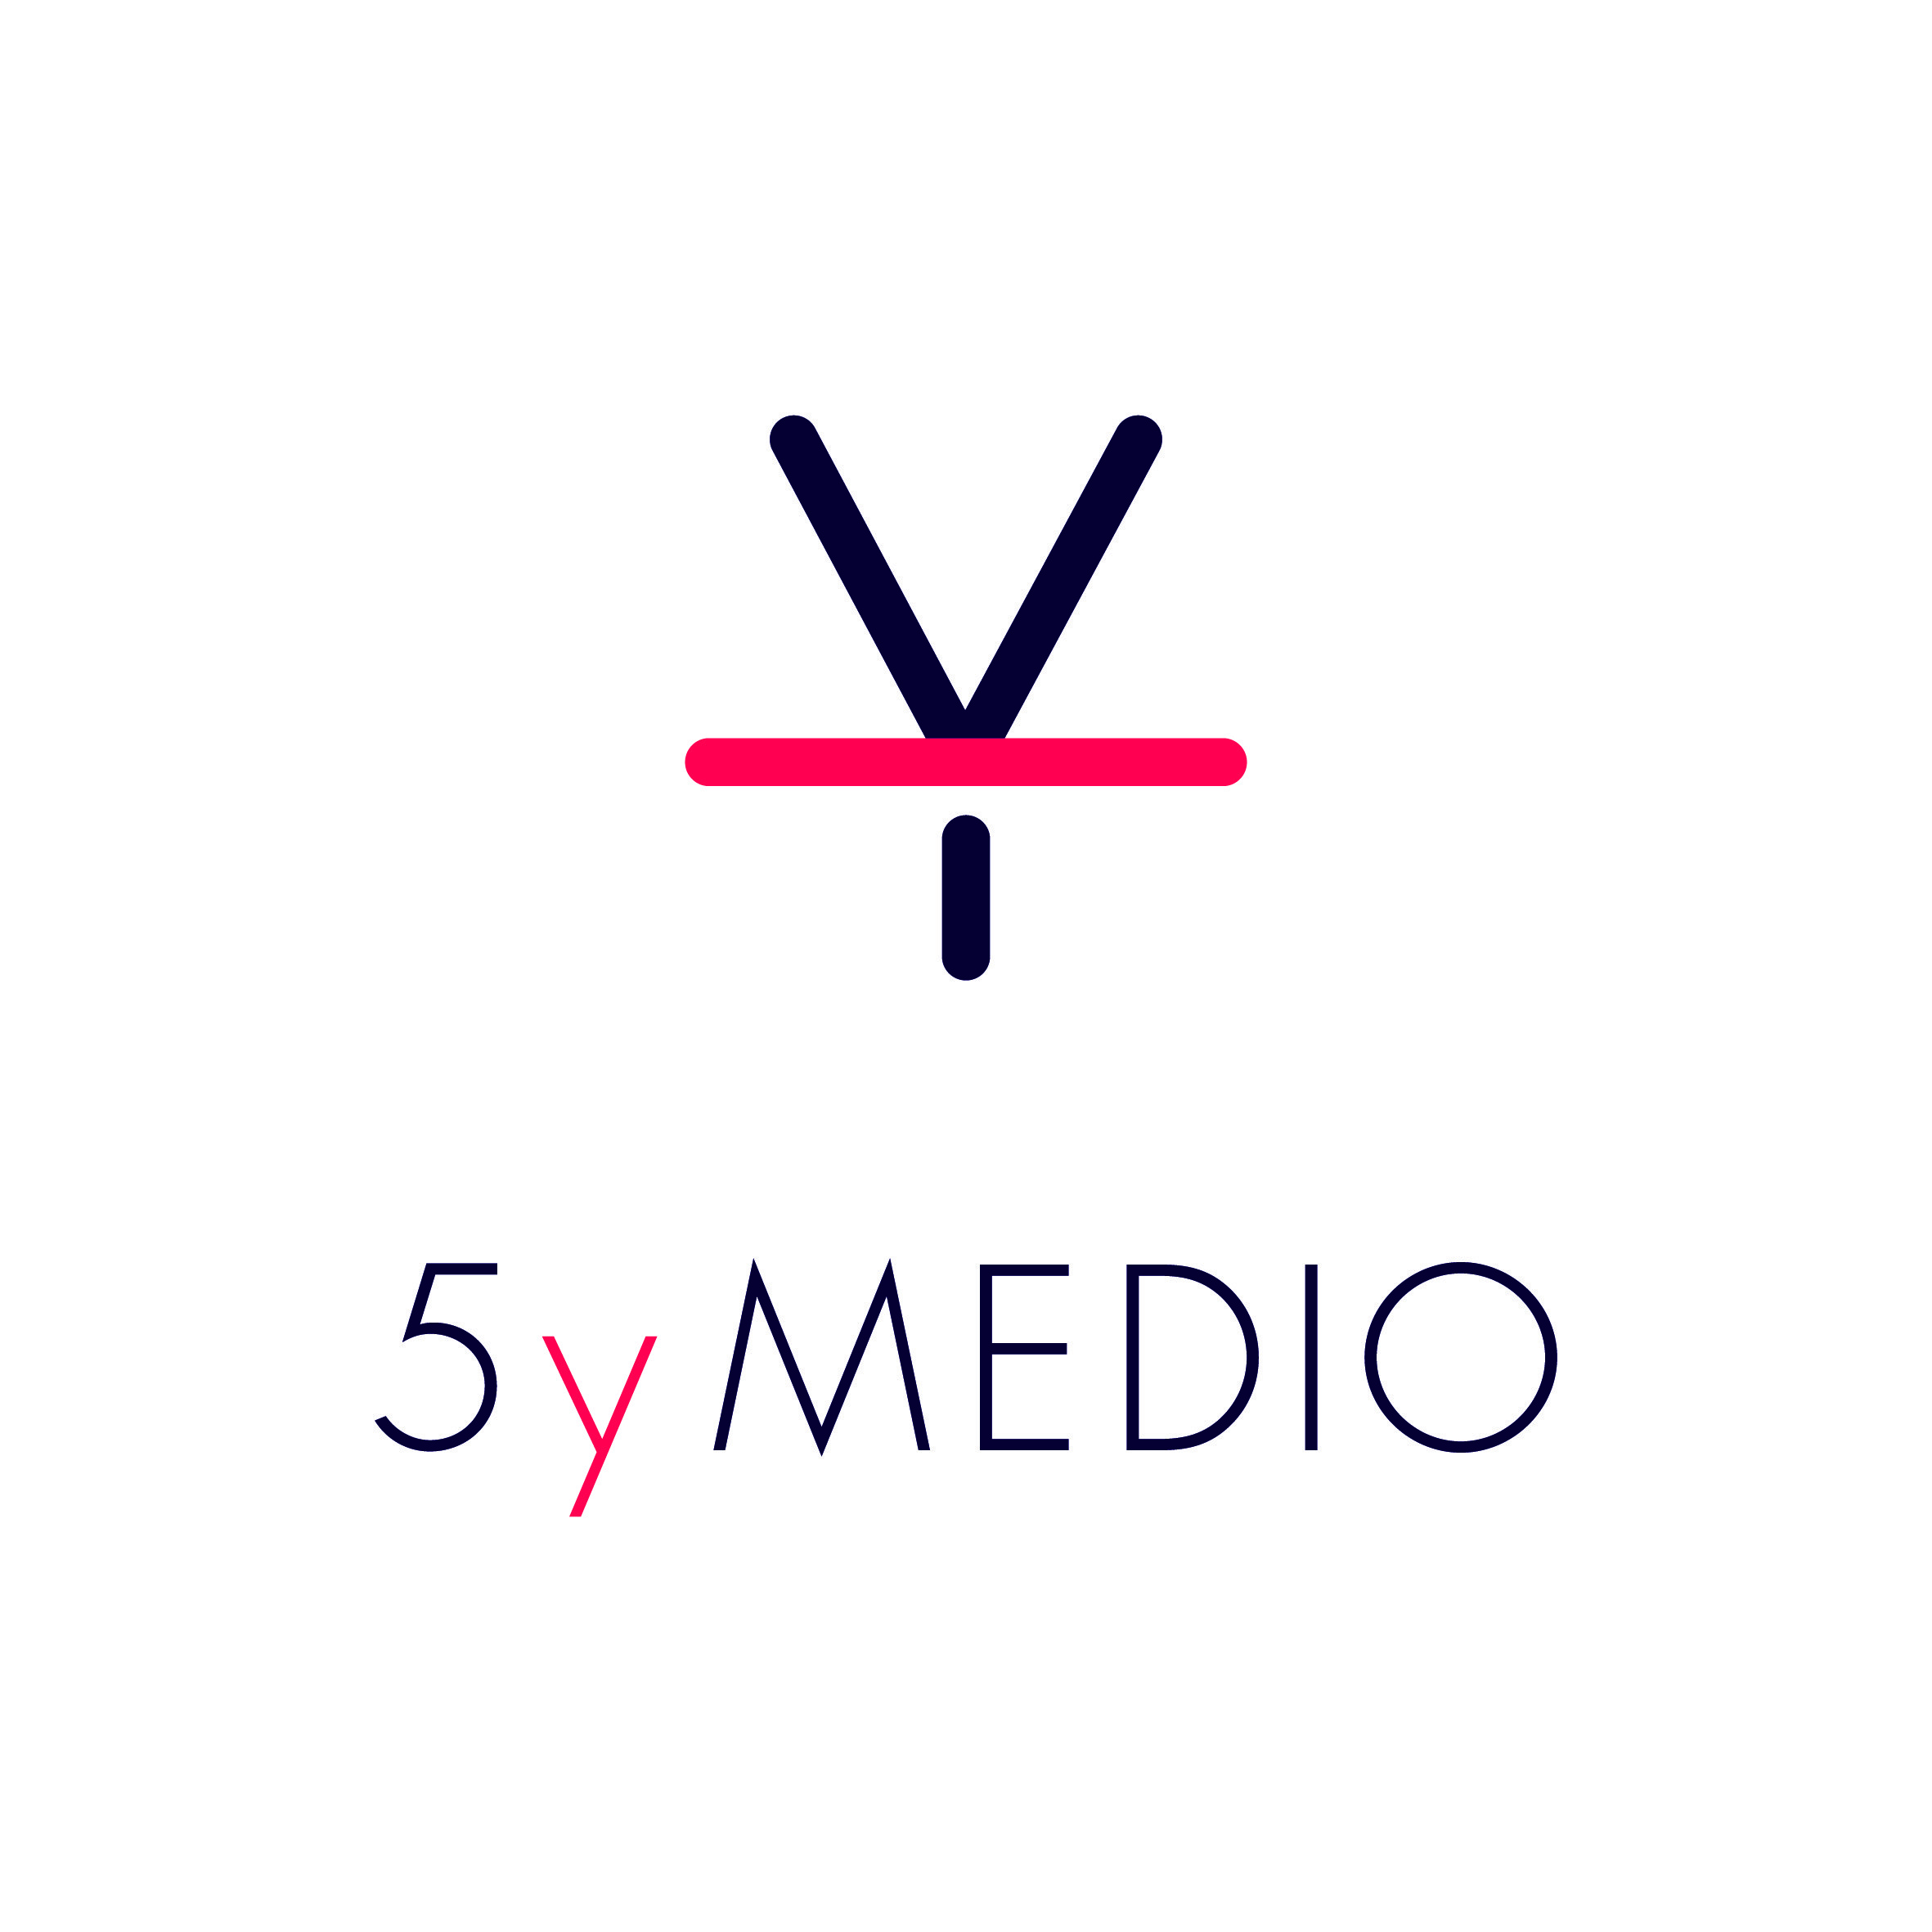 5yMedio | NOT JUST A LABEL